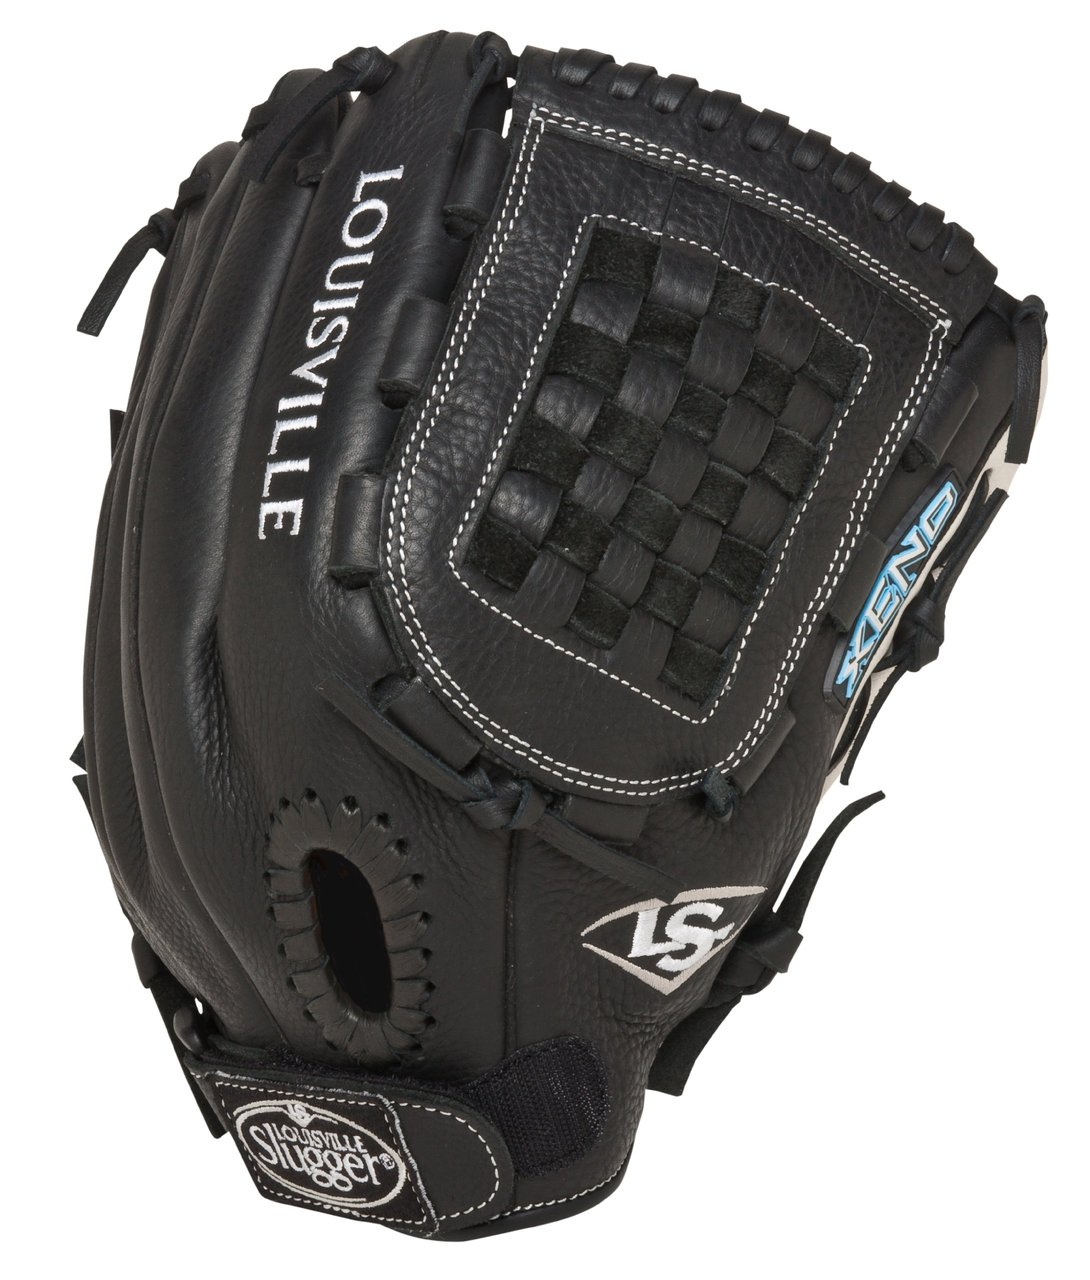 louisville-slugger-xeno-fastpitch-softball-glove-12-inch-fgxn14-bk120-right-handed-throw FGXN14-BK120-Right Handed Throw Louisville Slugger New Louisville Slugger Xeno Fastpitch Softball Glove 12 inch FGXN14-BK120 Right Handed